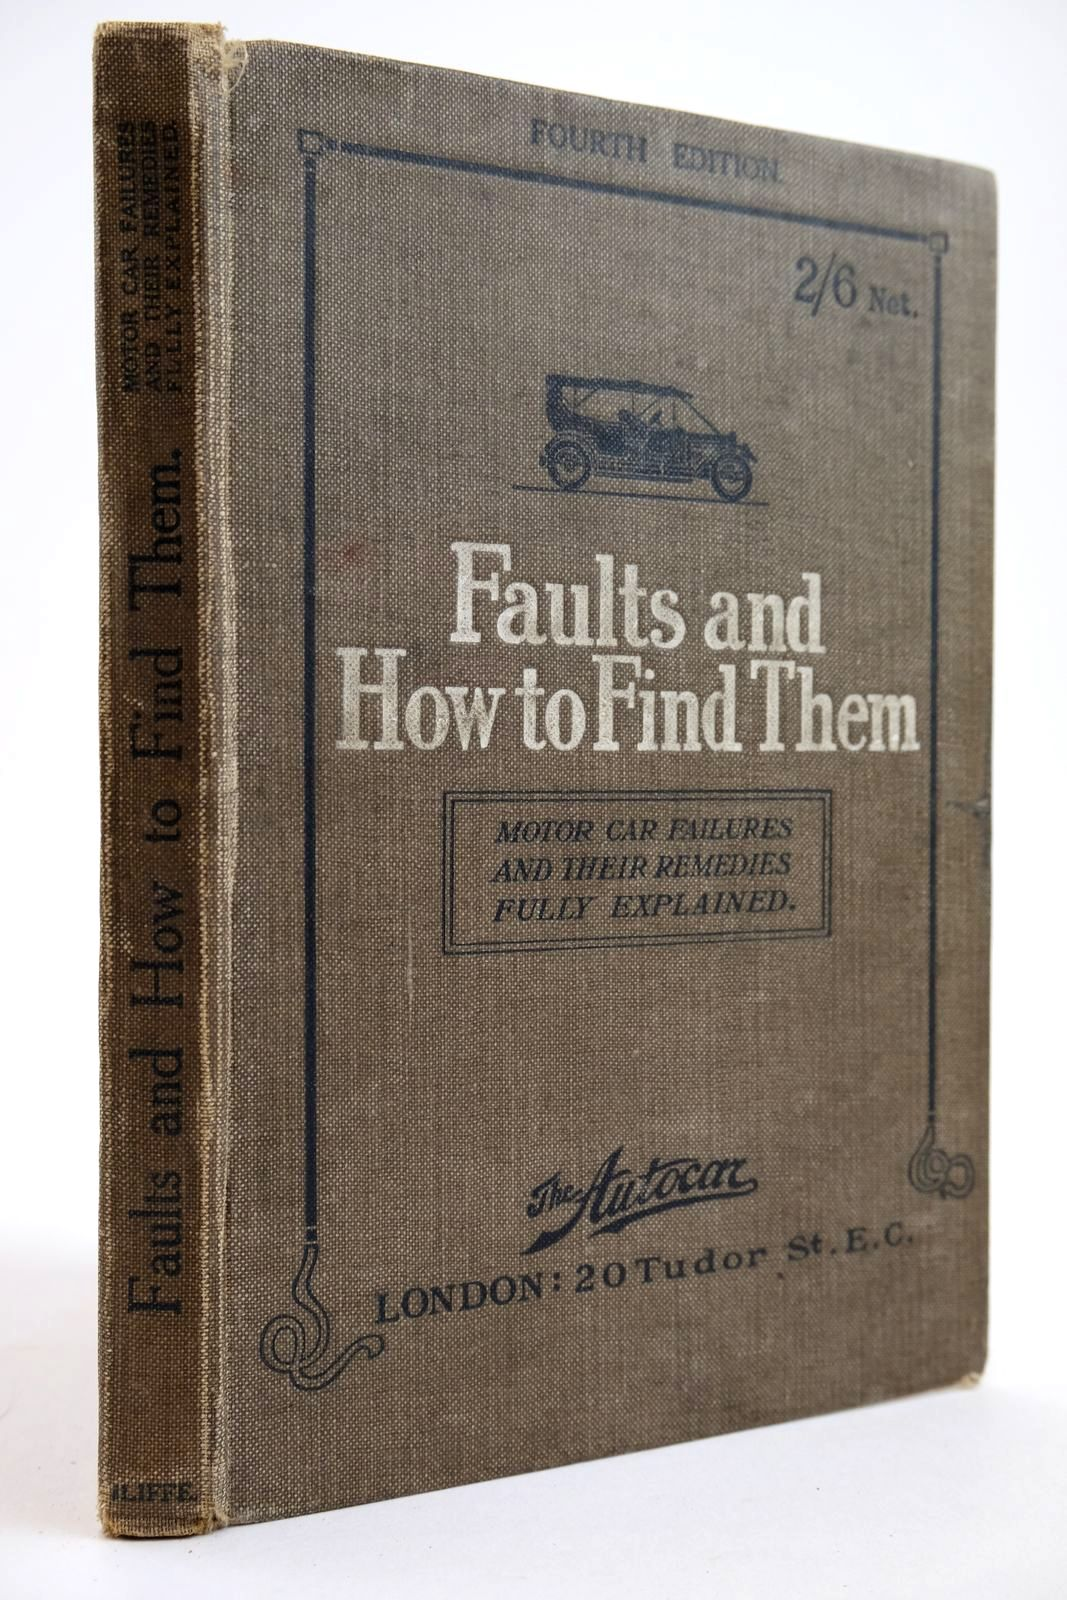 Photo of FAULTS AND HOW TO FIND THEM written by Bickford, J.S.V. published by Iliffe & Sons Limited (STOCK CODE: 2133948)  for sale by Stella & Rose's Books